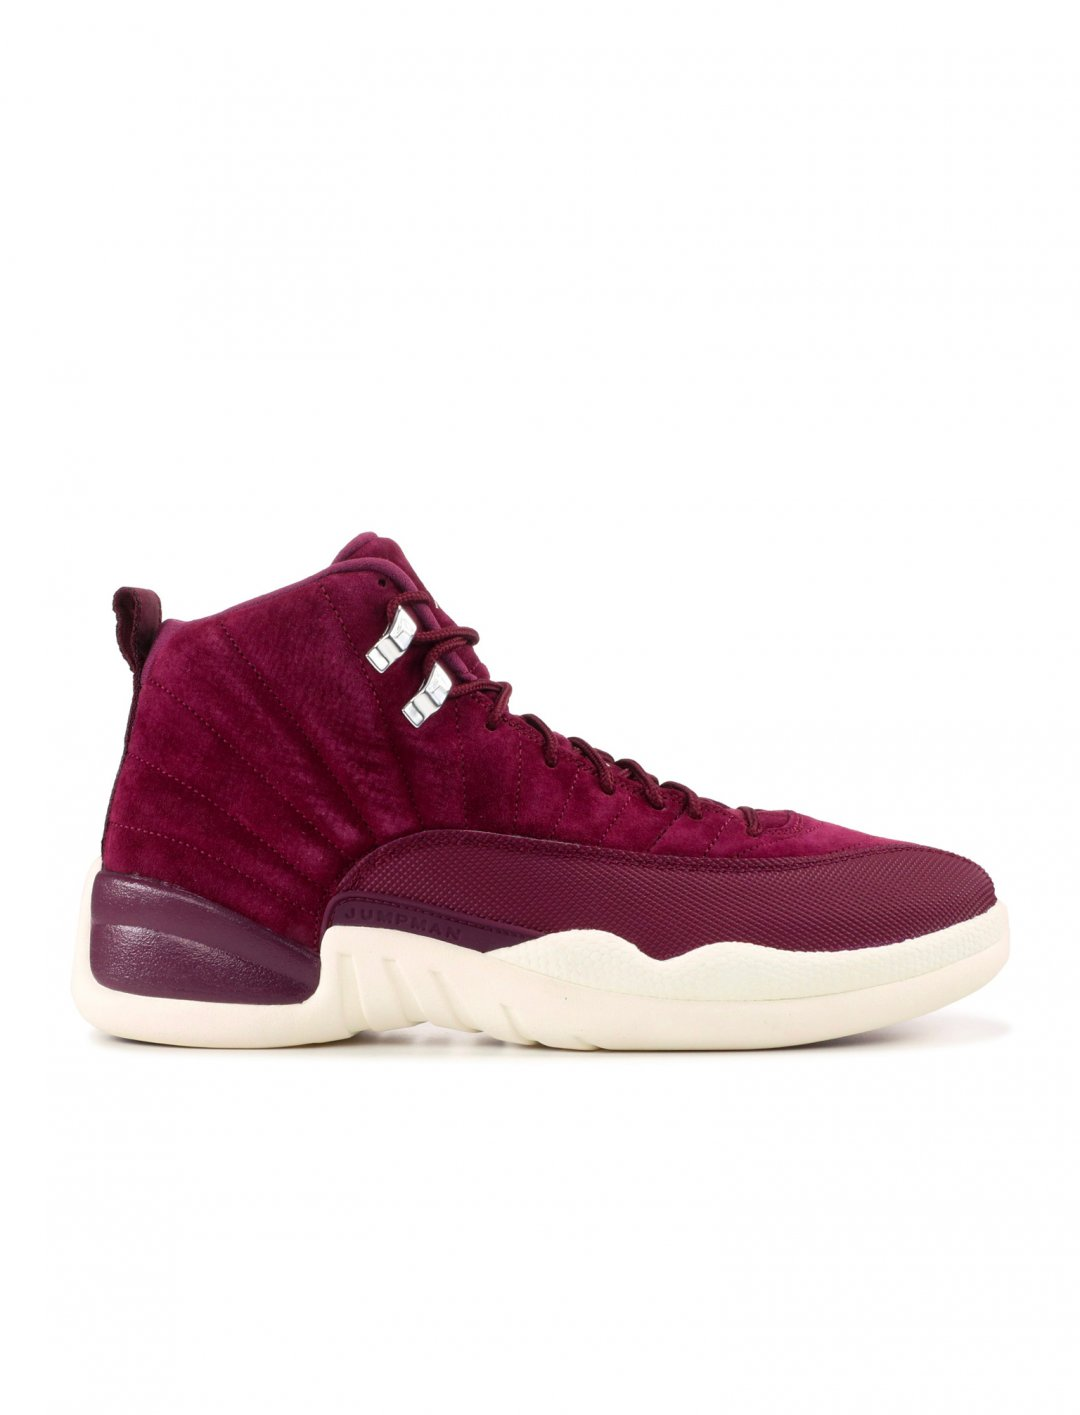 "Bordeaux Sneakers {""id"":12,""product_section_id"":1,""name"":""Shoes"",""order"":12} Air Jordan"